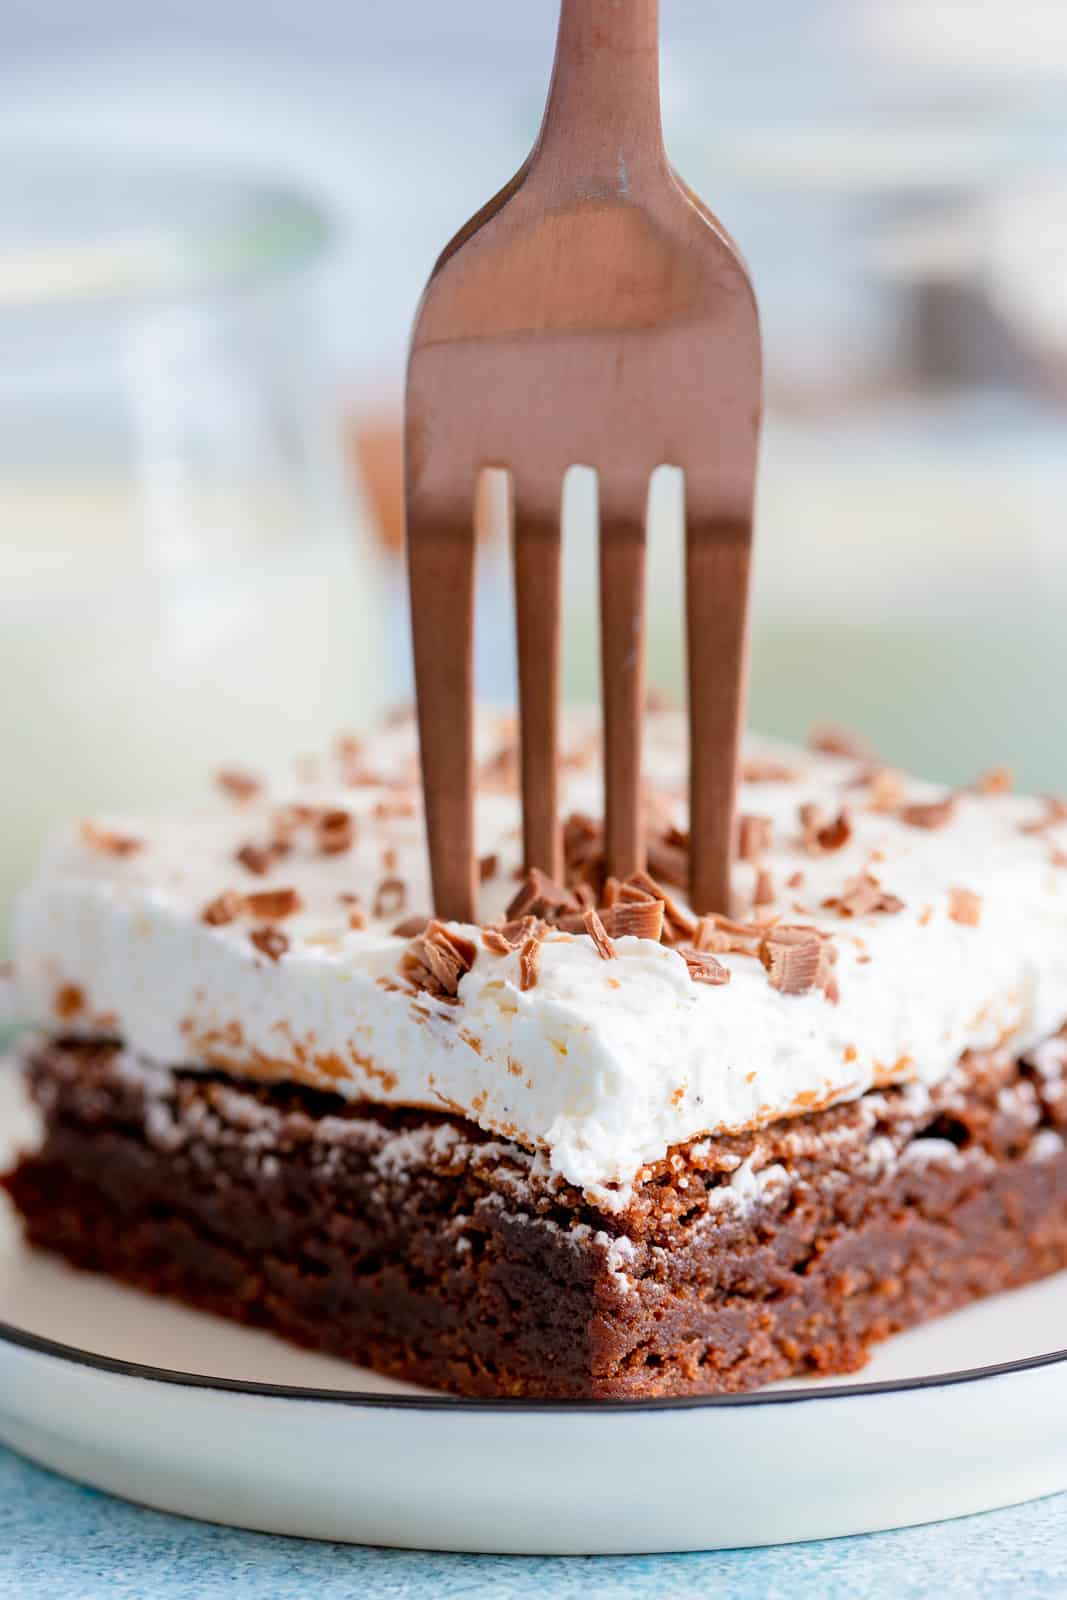 Fork going into top of brownie on white plate